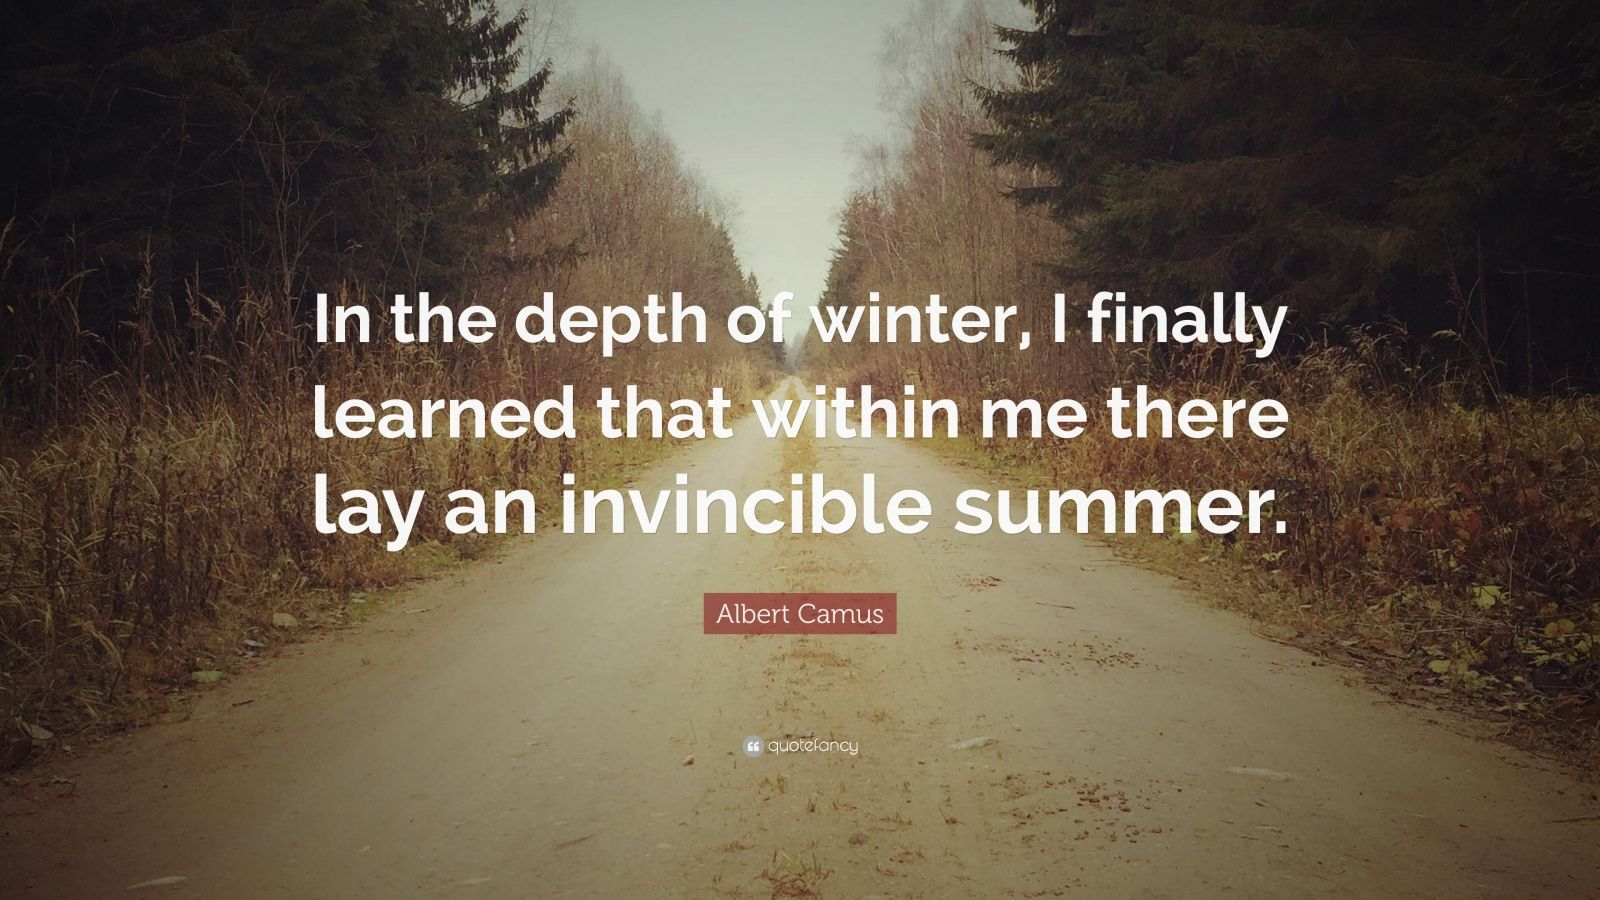 Henry David Thoreau Wallpaper Quote Albert Camus Quote In The Depth Of Winter I Finally